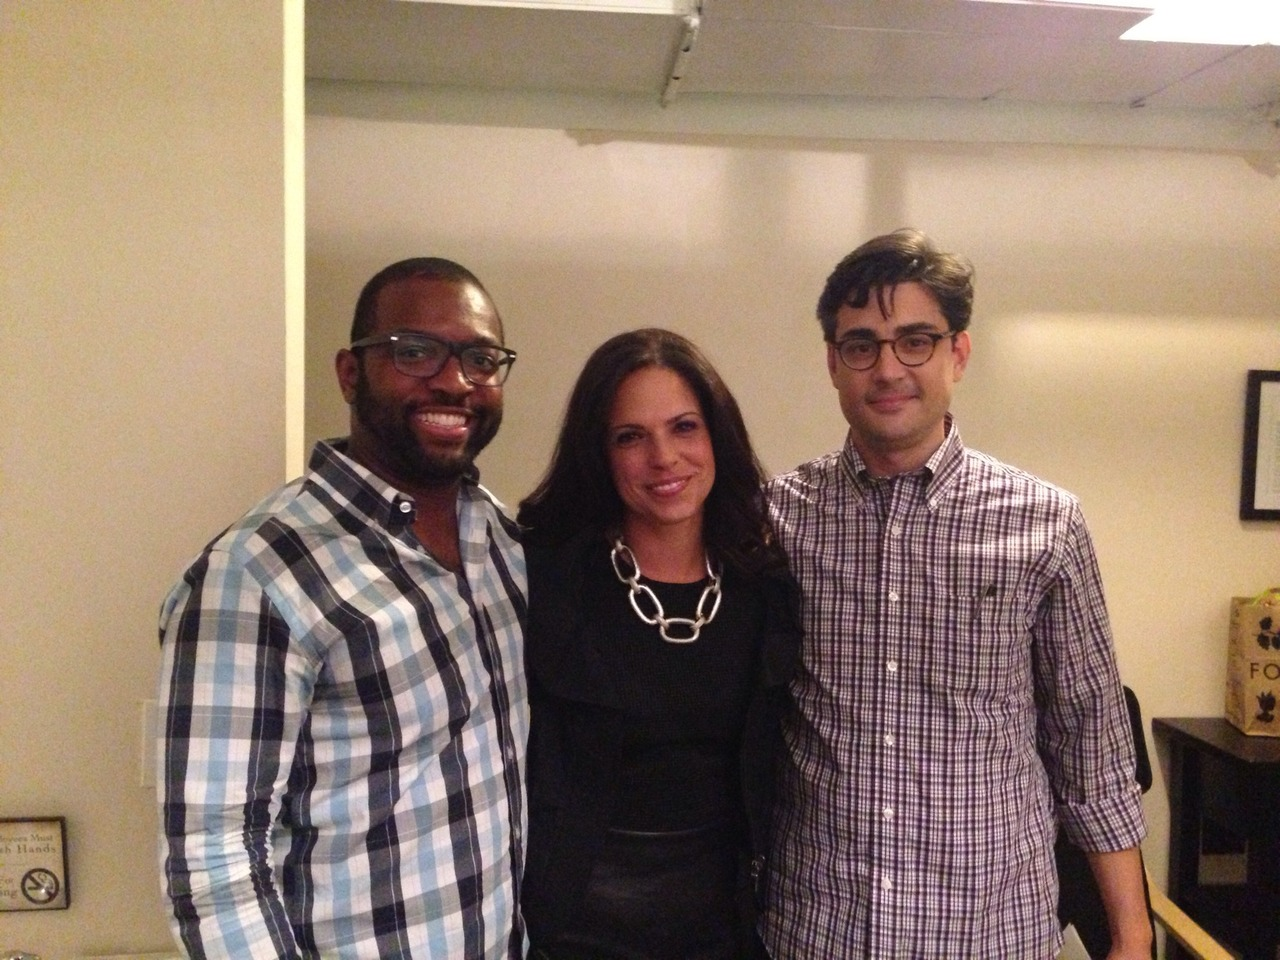 #showtime! W @soledad_obrien @tannercolby #aboutrace. STREAMING http://youtube.com/user/starfishmediagroup at SubCulture – View on Path.